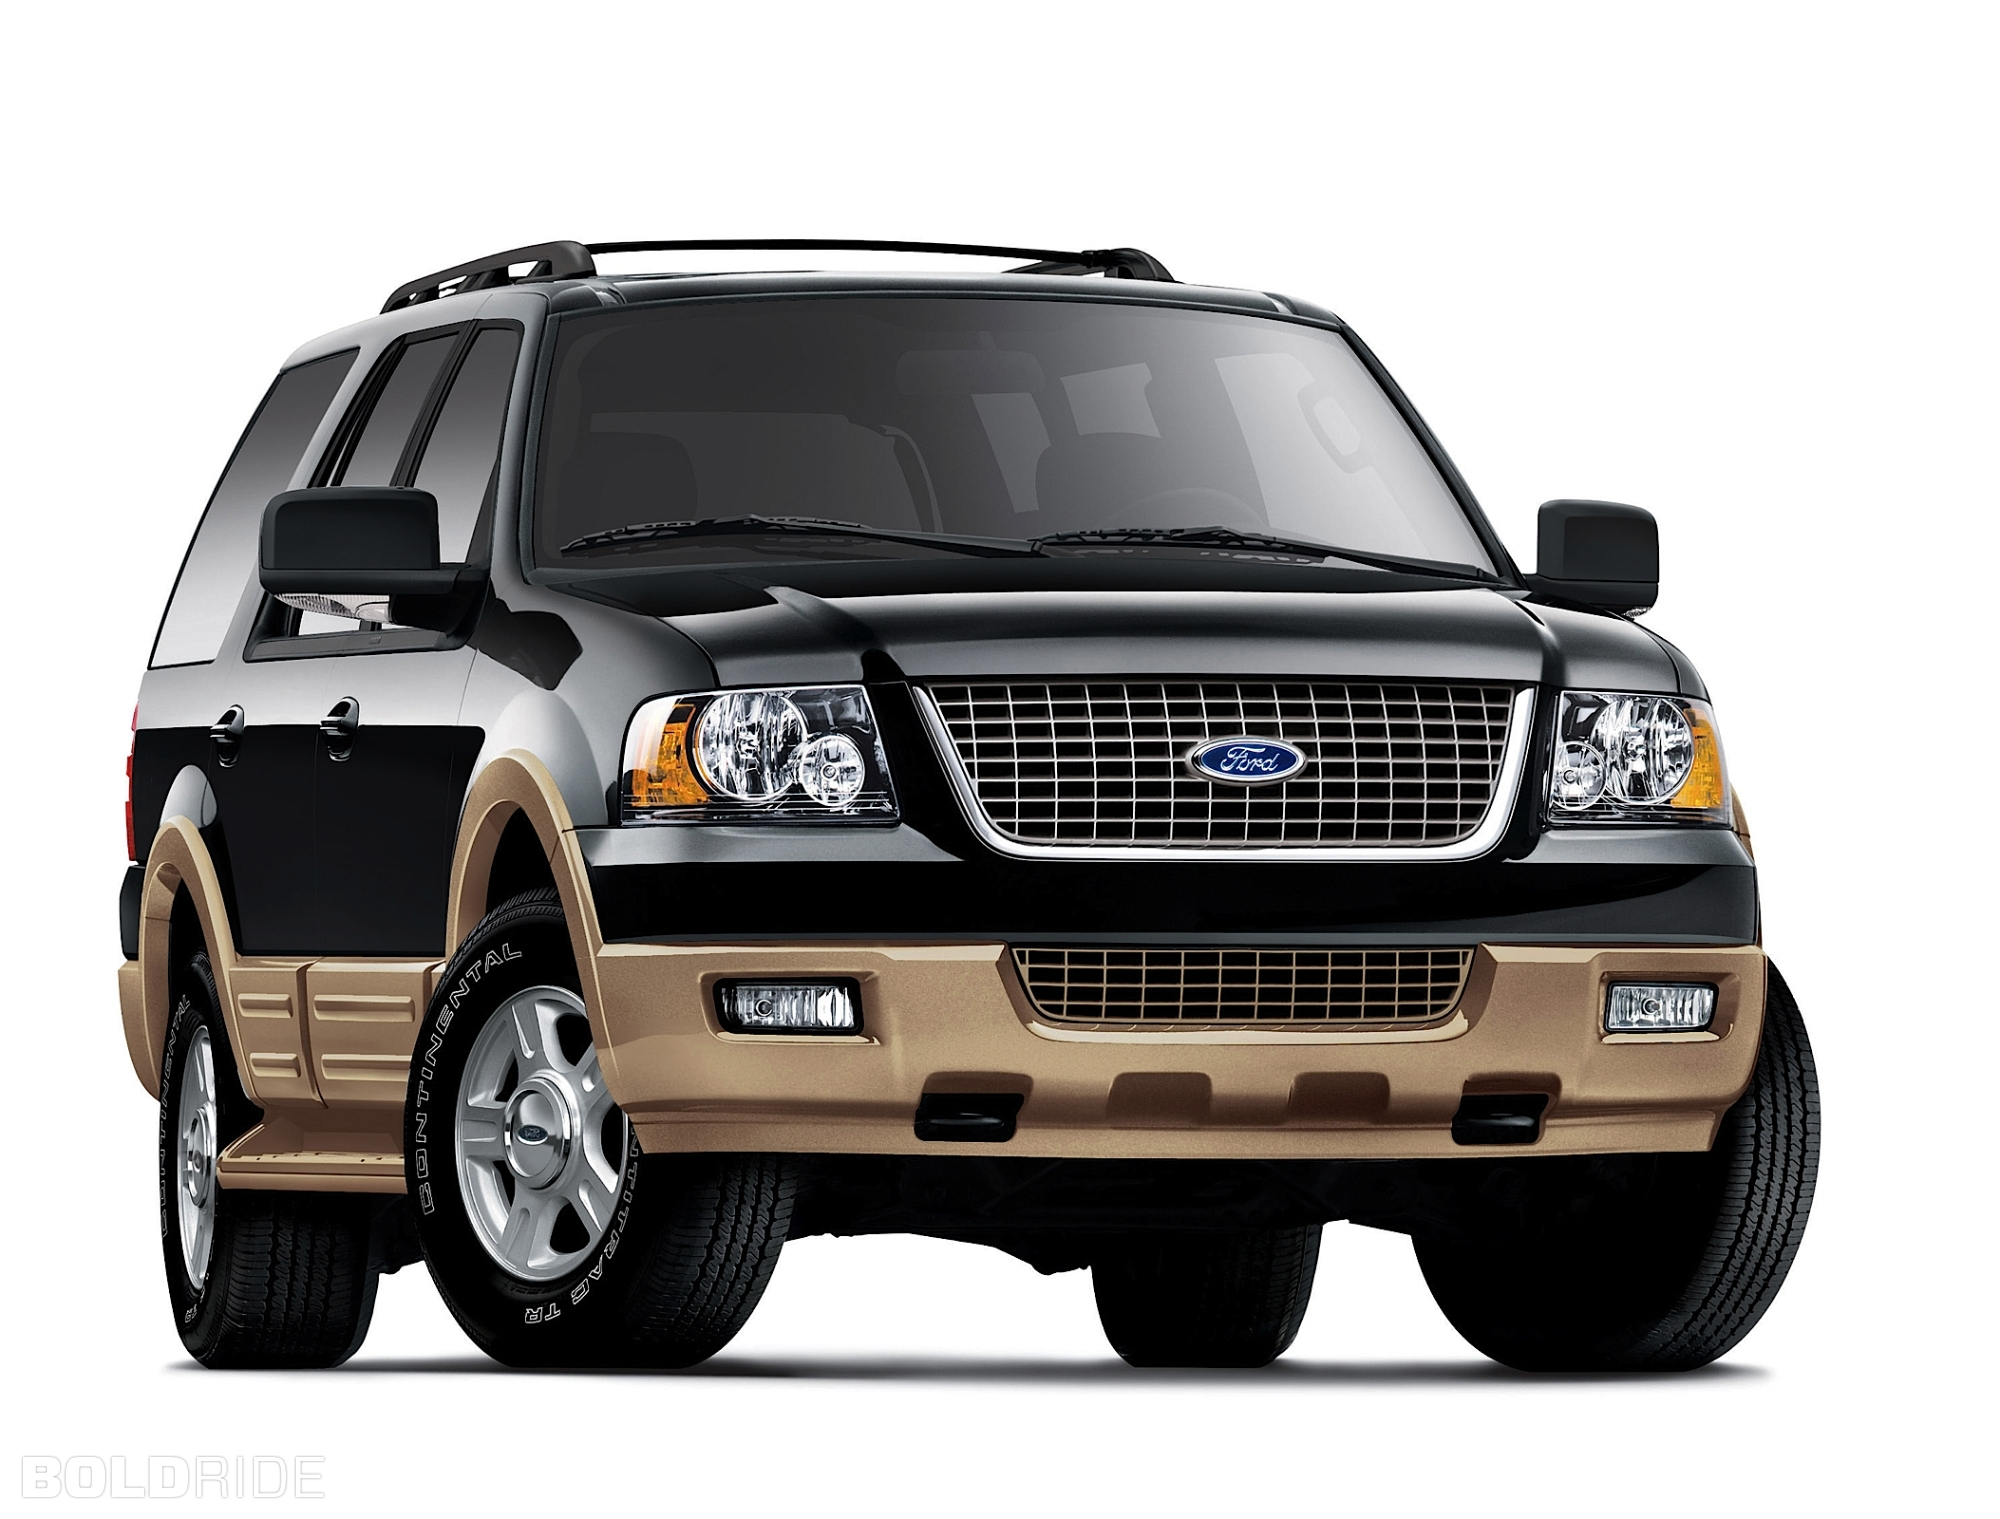 2006 ford expedition image 11